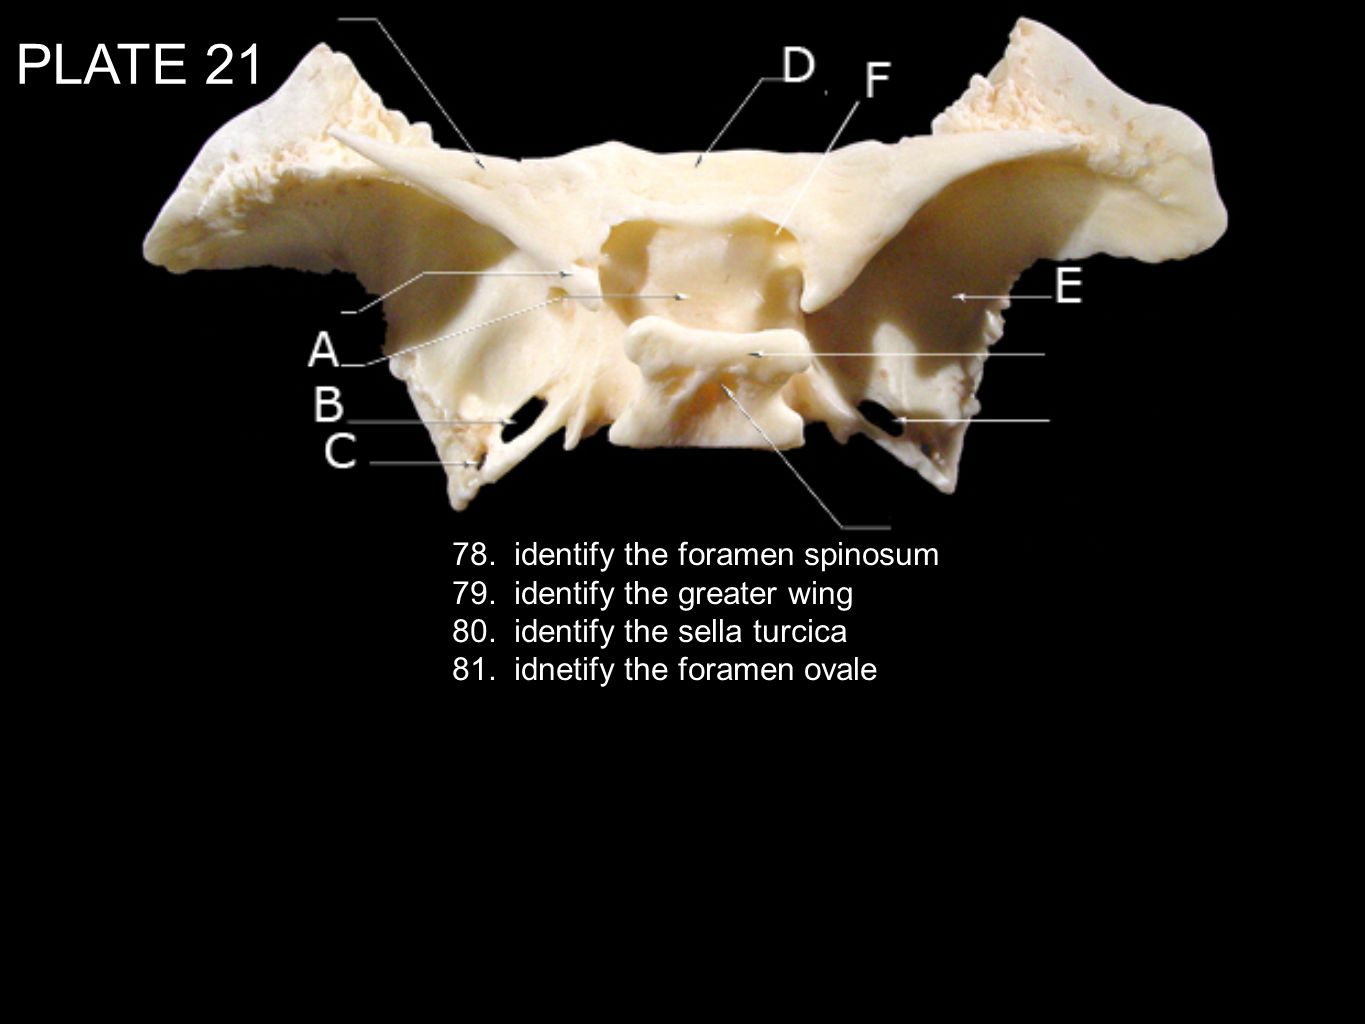 PLATE 21 78. identify the foramen spinosum